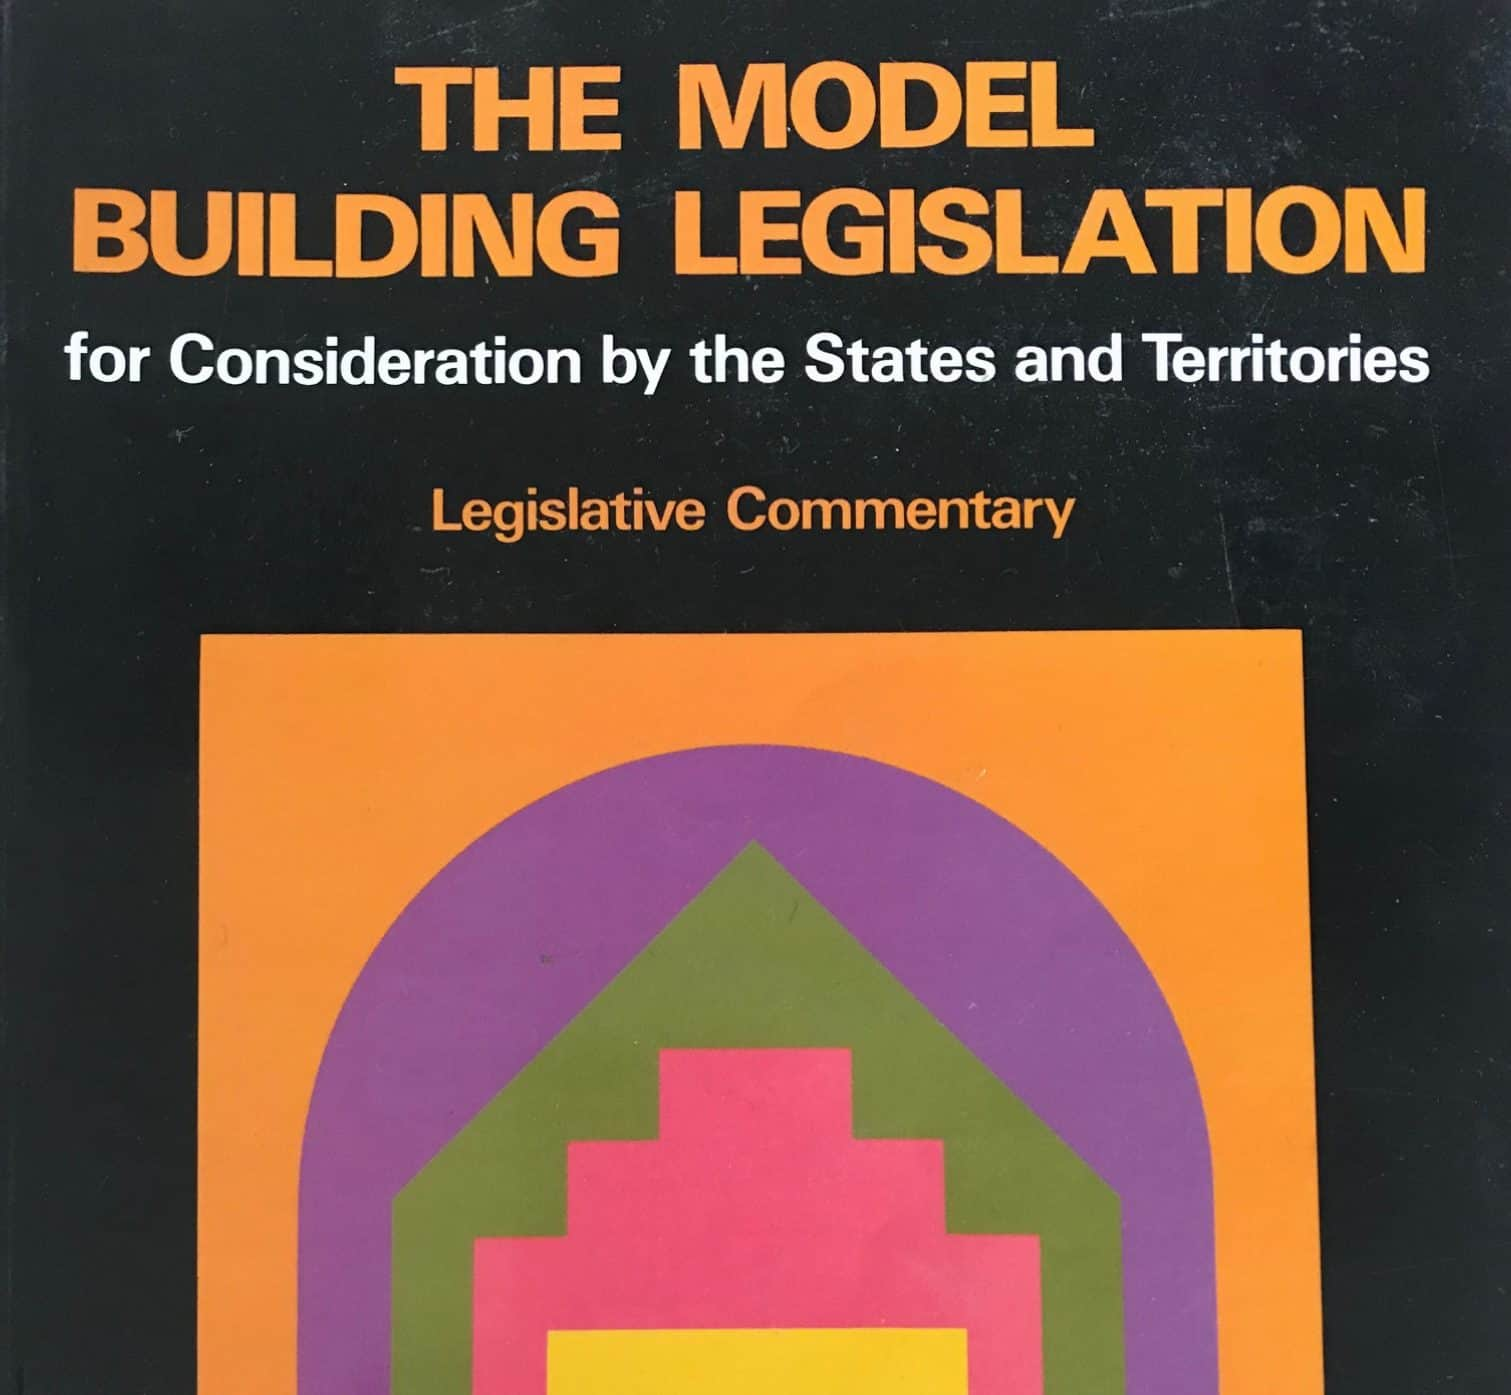 The Model Building Act in Australia  – The Regulatory Template that Overhauled Liability Regimes Not Limited to Joint and Several Liability in the Early 1990s